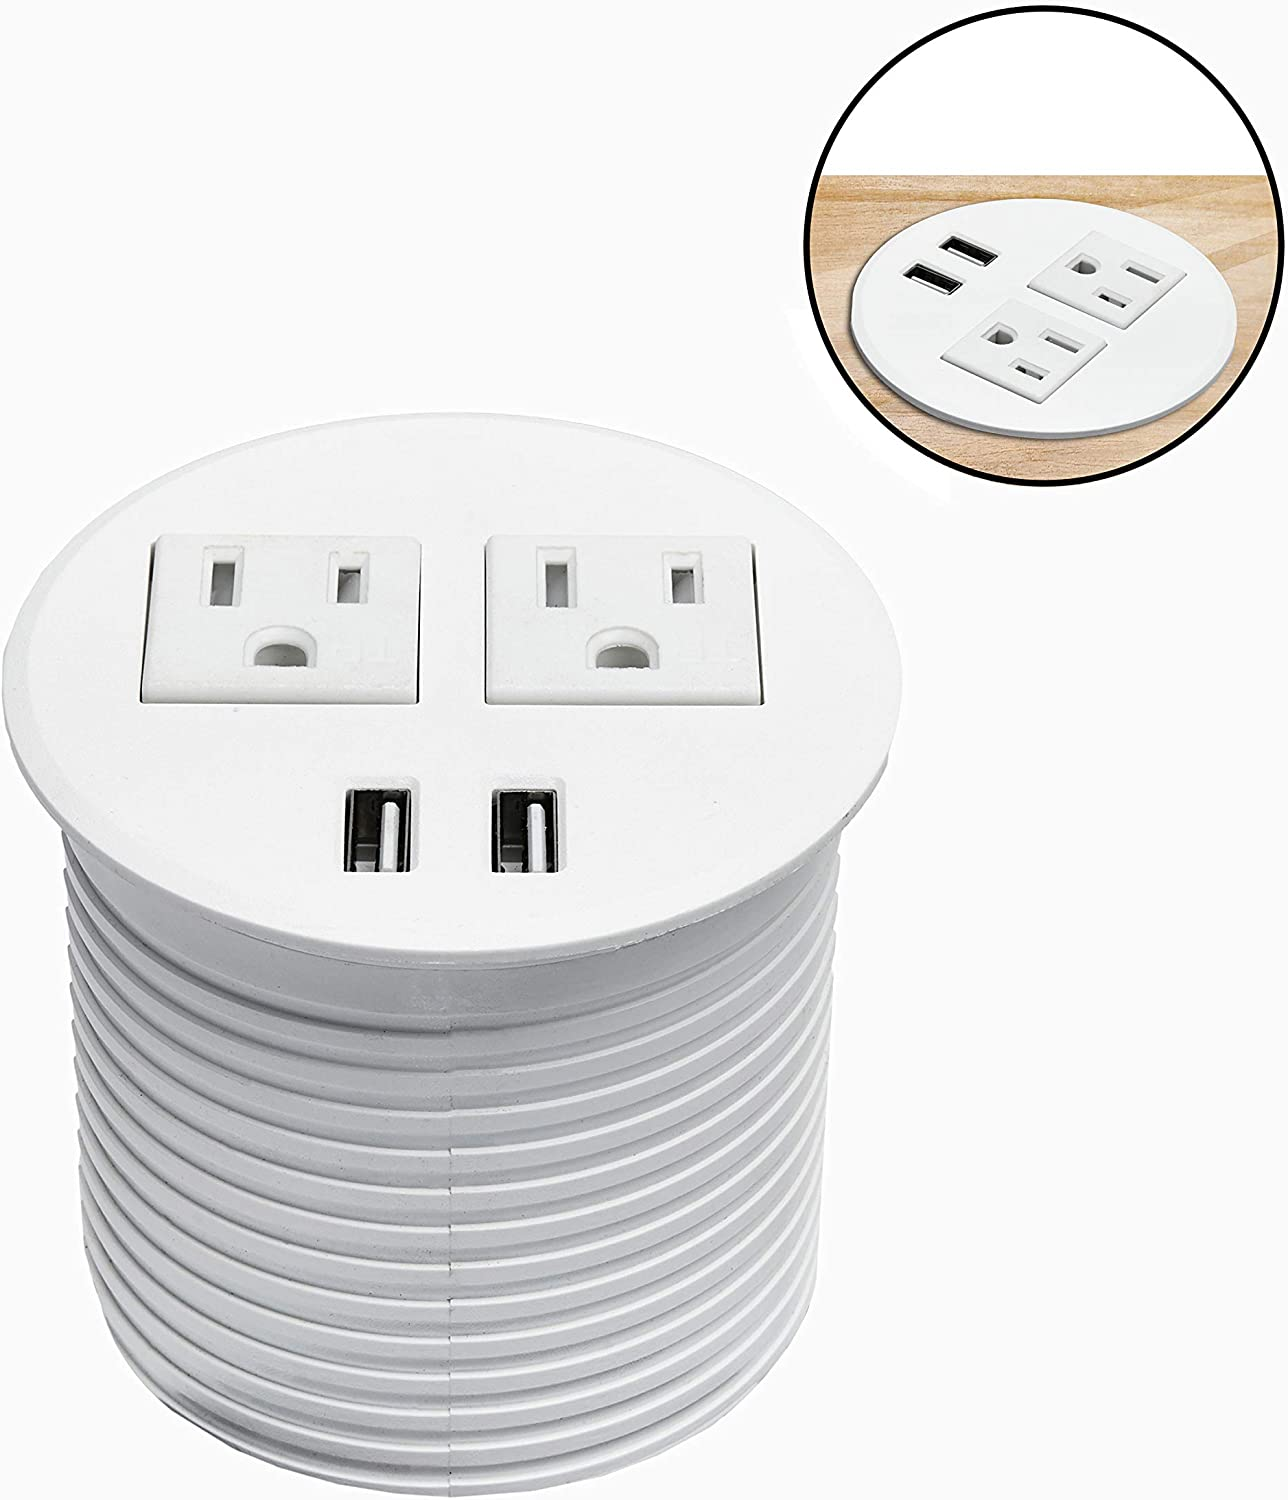 BTU Desktop Power Grommet, Desk Power Outlet Socket Recessed Power Strip with 2 Power Socket & 2 USB Ports & 6ft Extension Cords for Computer, Table, Kitchen, Office, Home, Hotel and More (White)